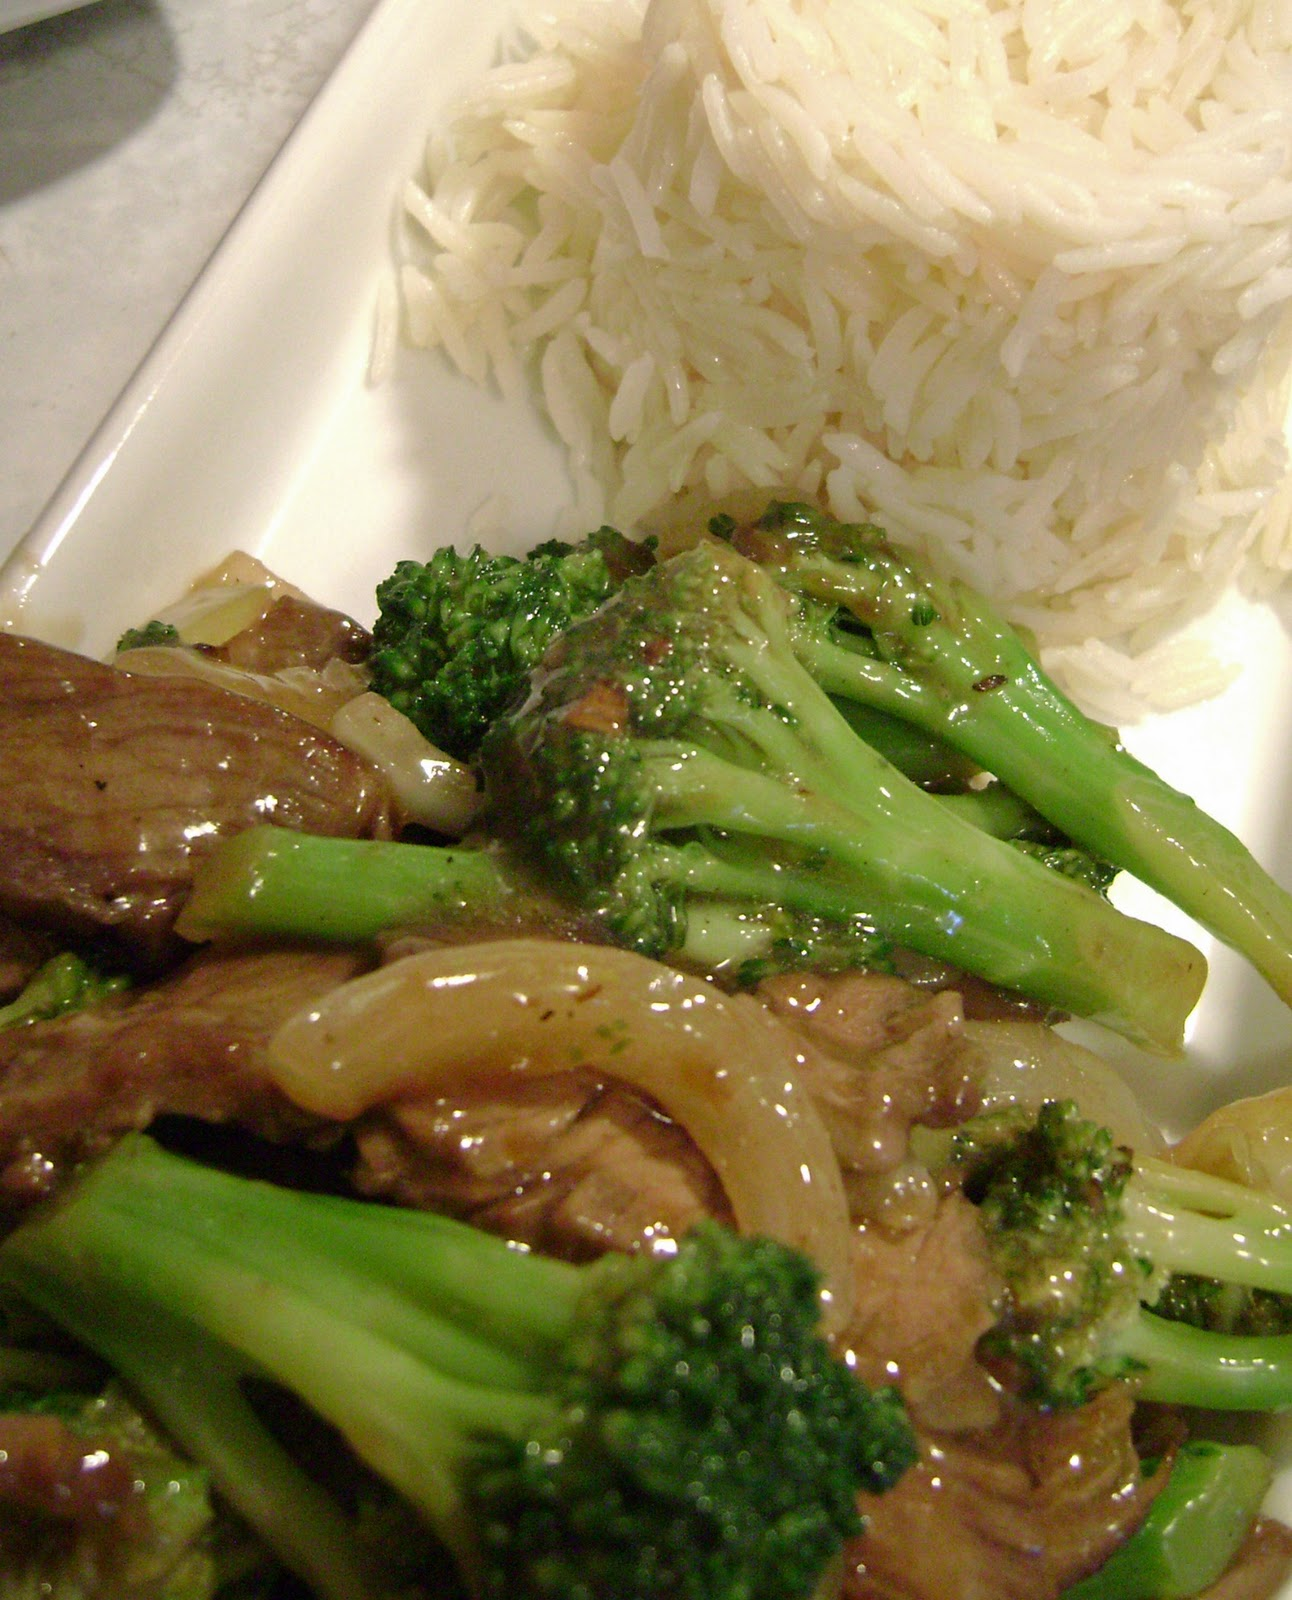 Jo and Sue: Beef and Broccoli Stir Fry